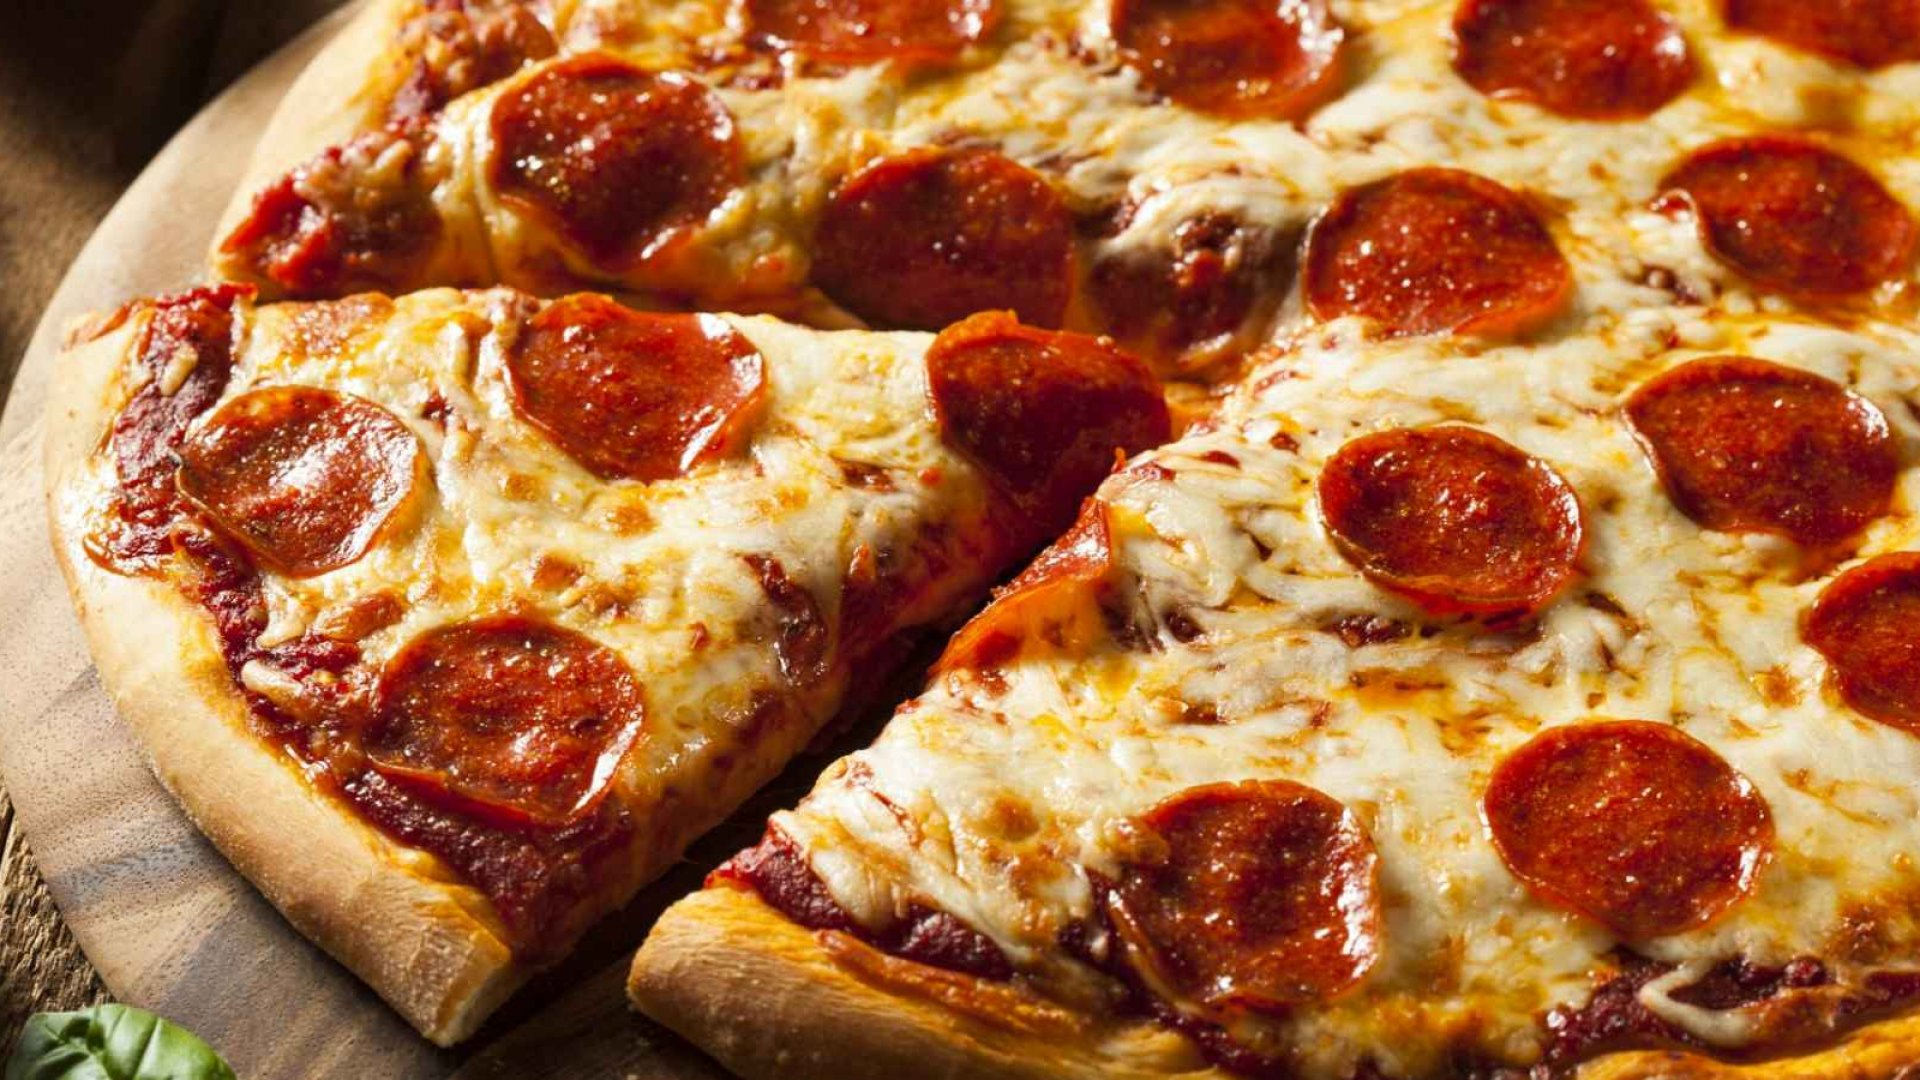 6 Lessons I Learned About Business (and Life) From Delivering Pizza